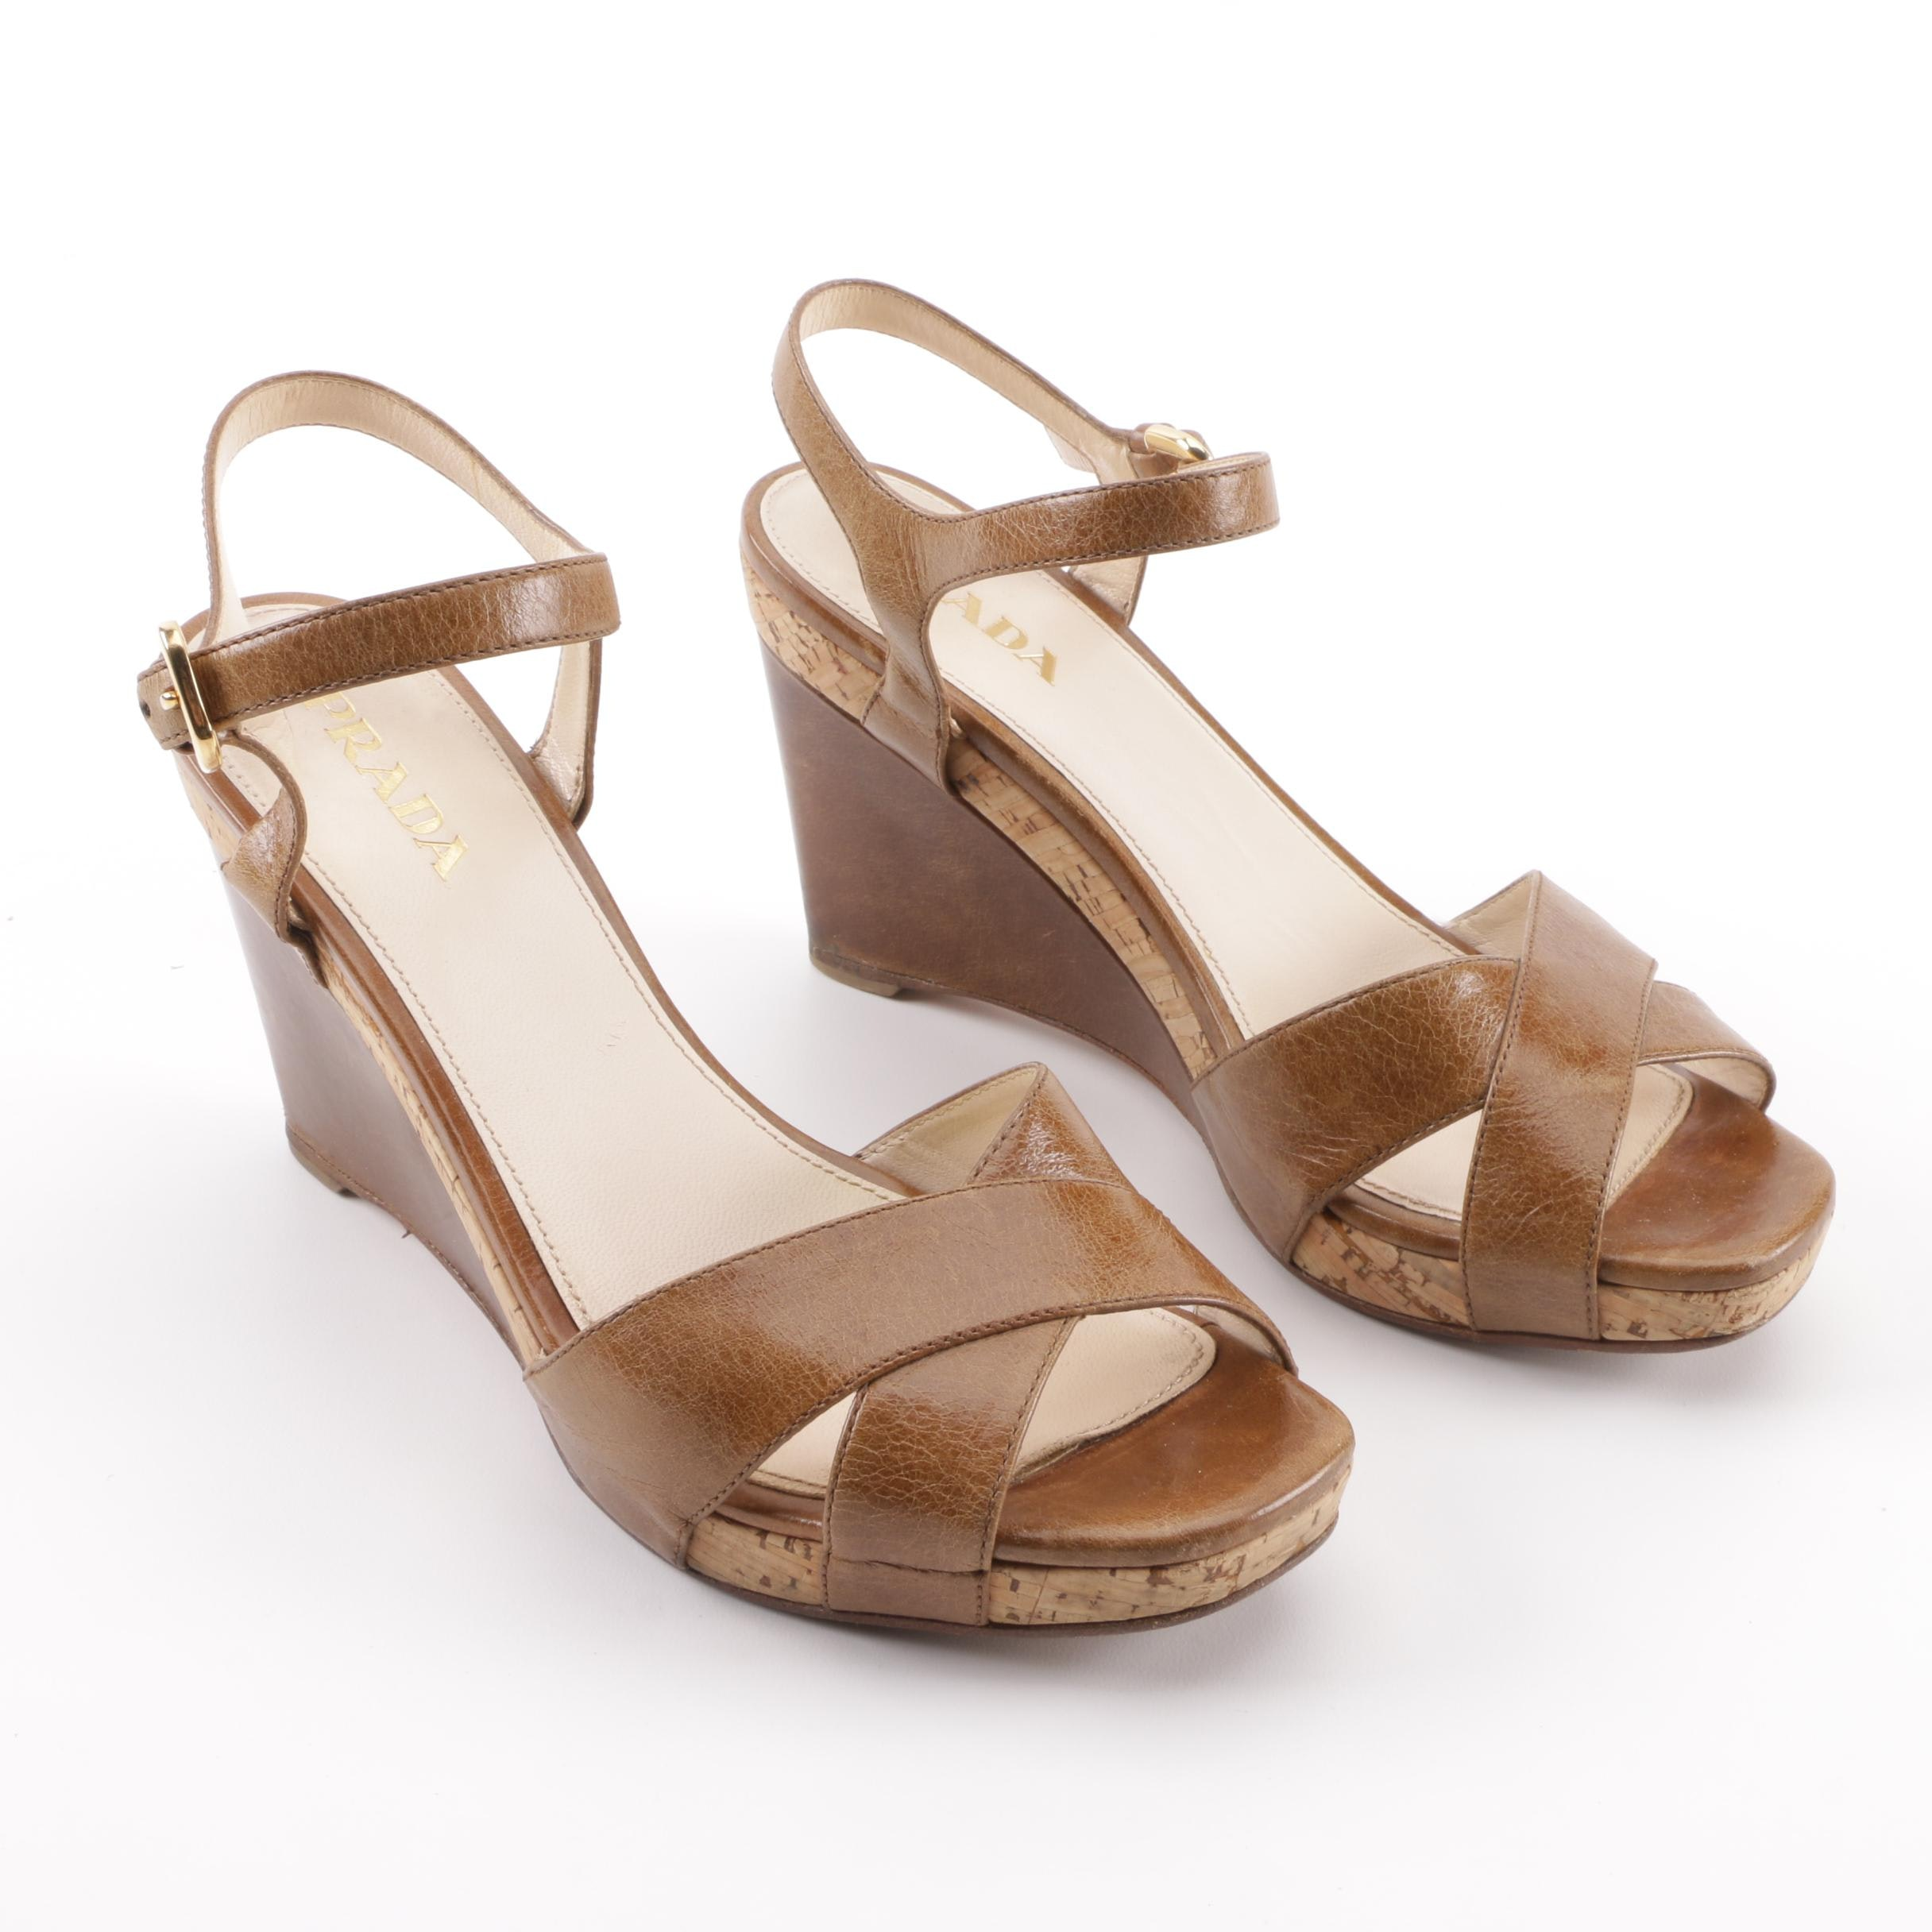 Prada Brown Leather and Cork Wedge Sandals